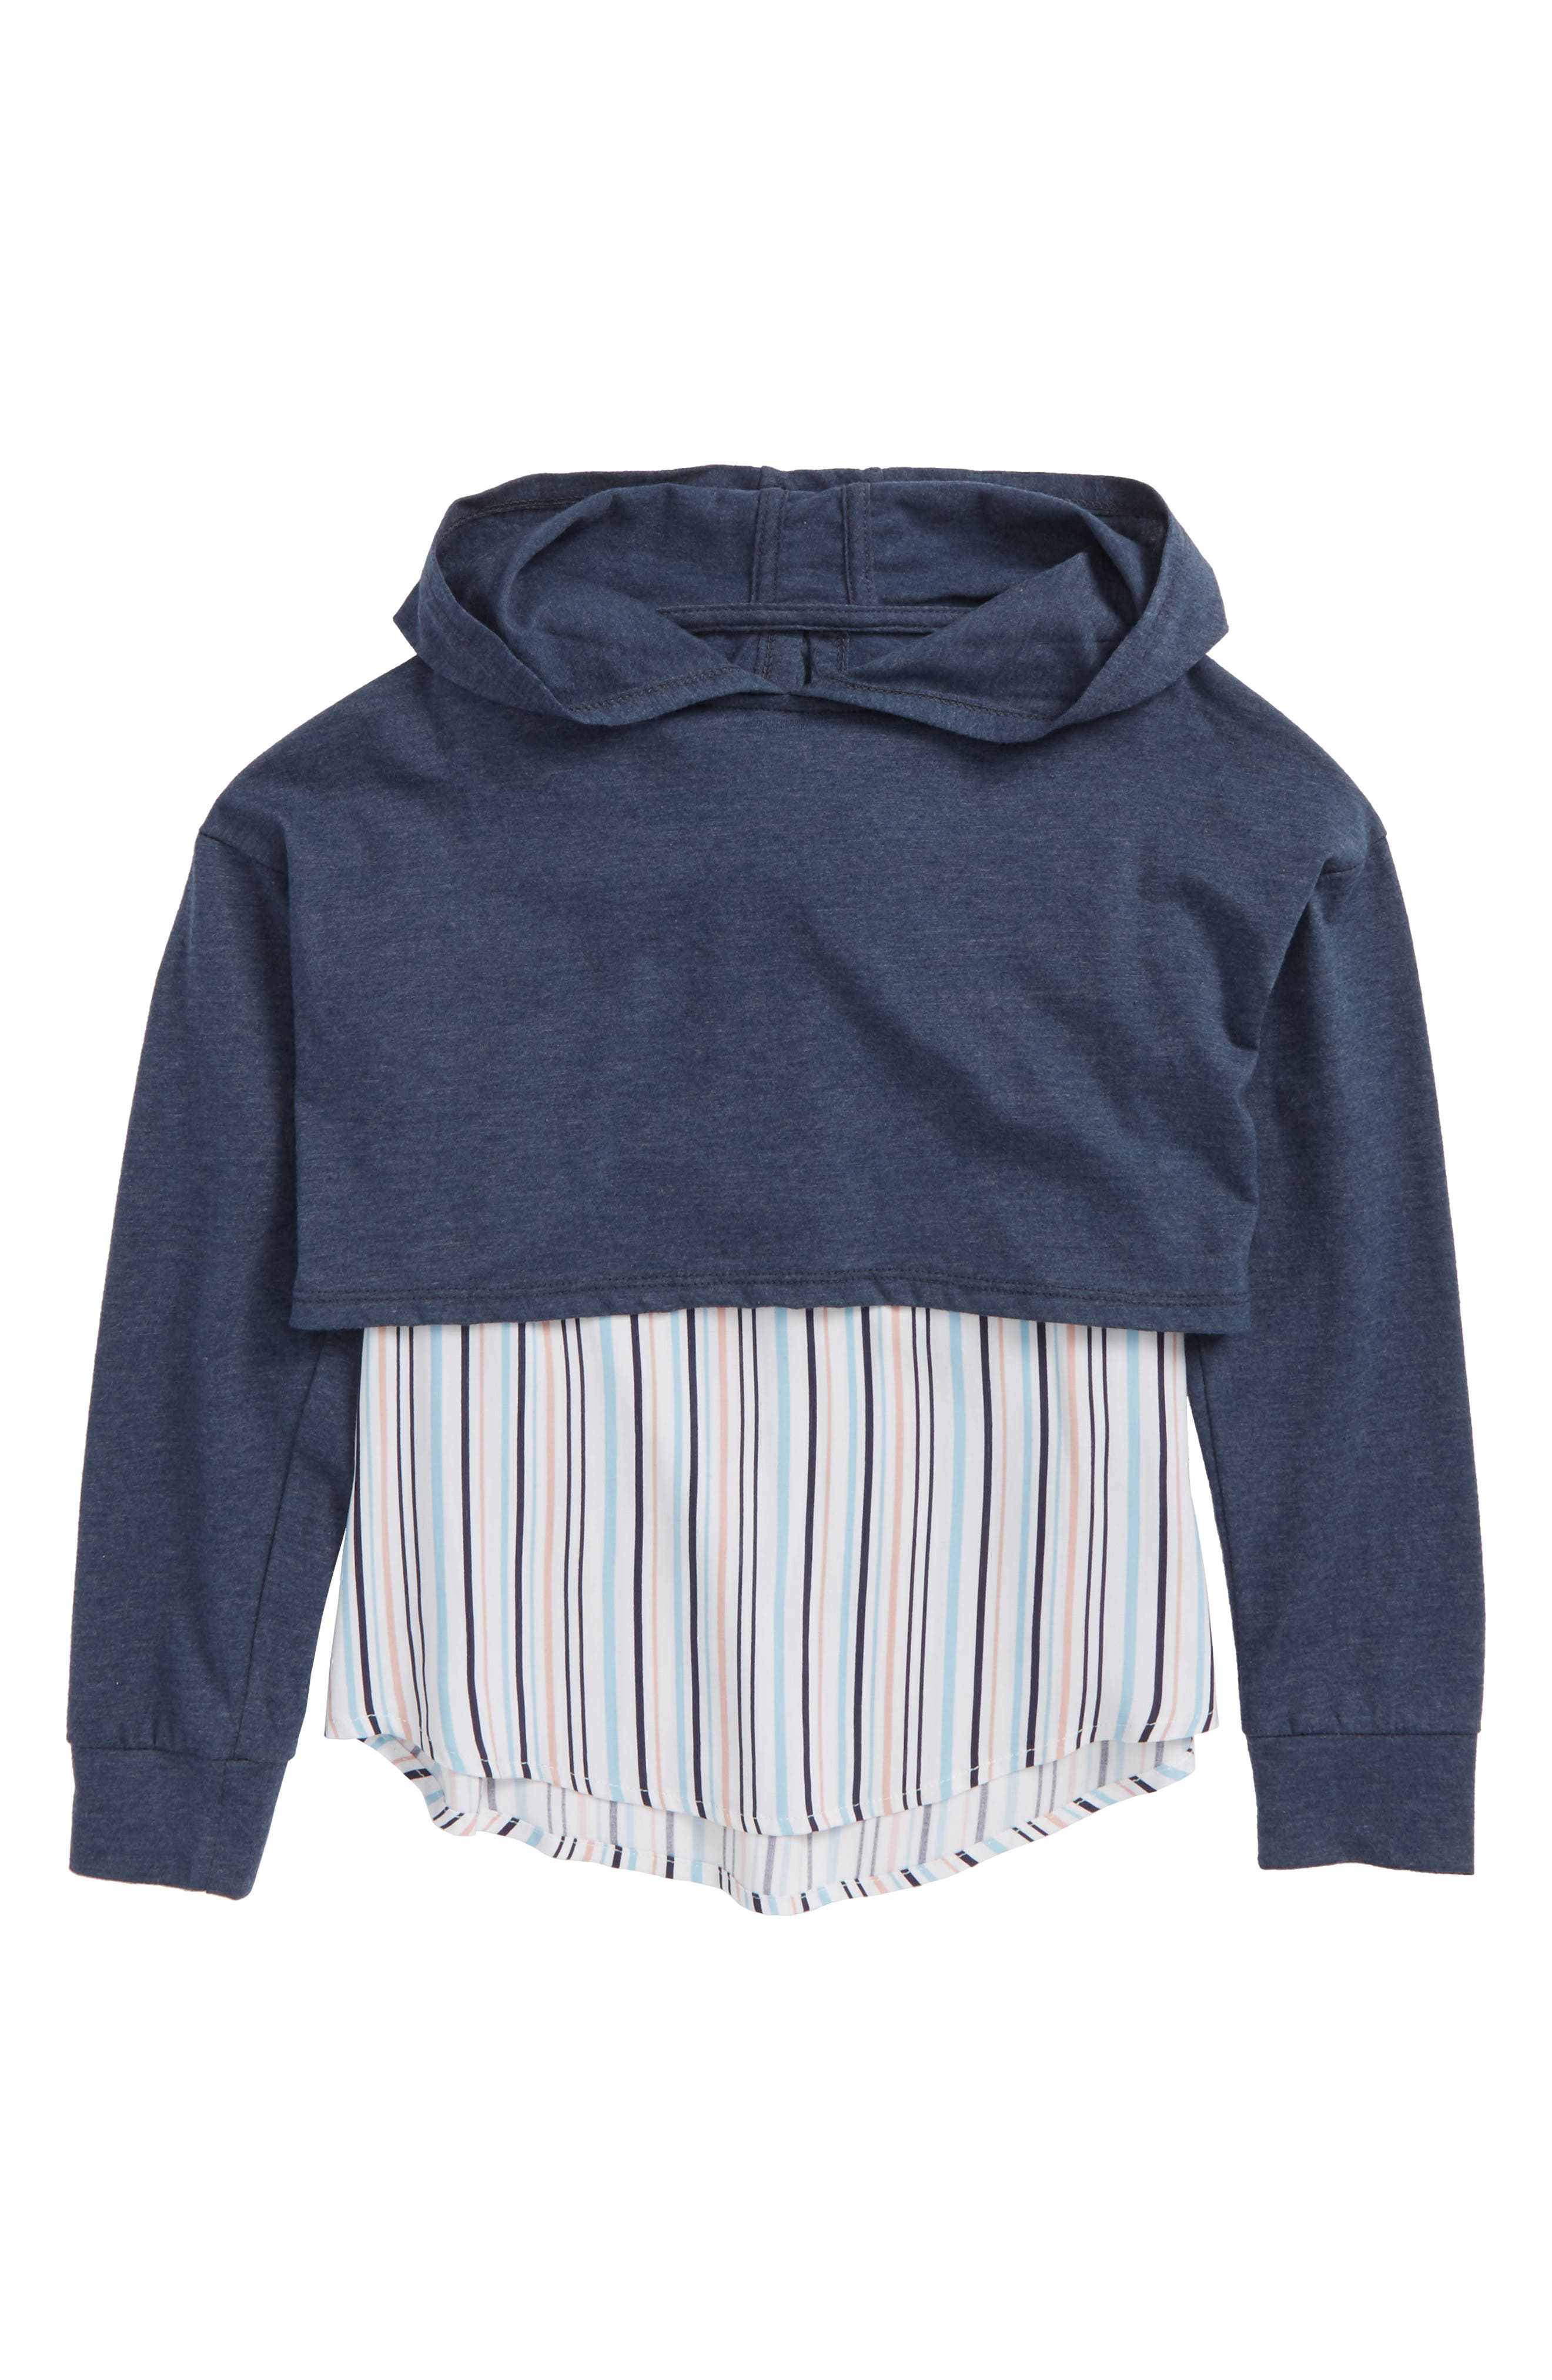 Mixed Media Hooded Top,                         Main,                         color, Blue/ Multi